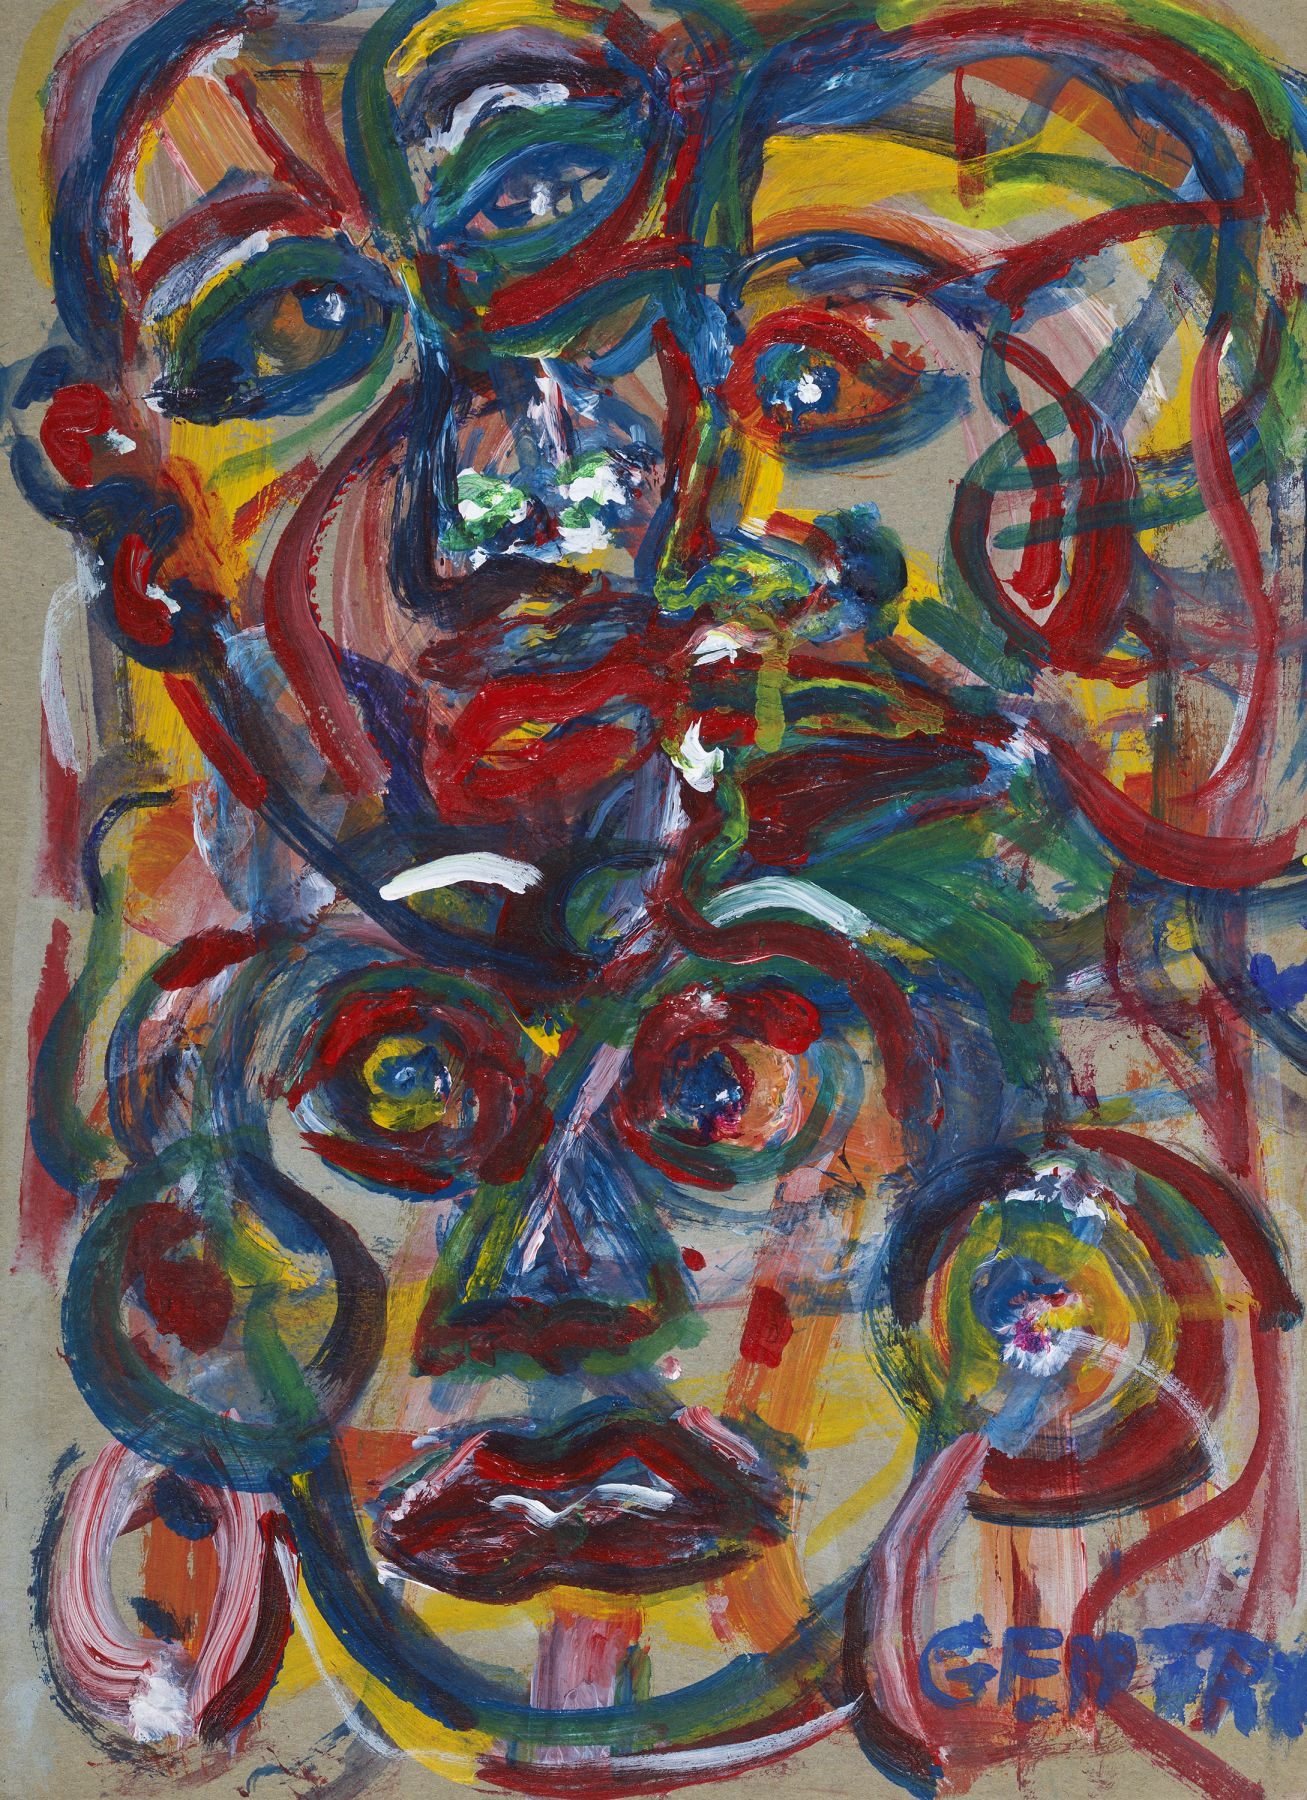 Herbert Gentry, Three Ways, 1994, Acrylic on board, 11 1/2 x 8 1/4 inches,  Outlined and overlapped portraits in red, blue, green and yellow. Herbert Gentry painted in a semi-figural abstract style, suggesting images of humans, masks, animals and objects caught in a web of circular brush strokes, encompassed by flat, bright color.